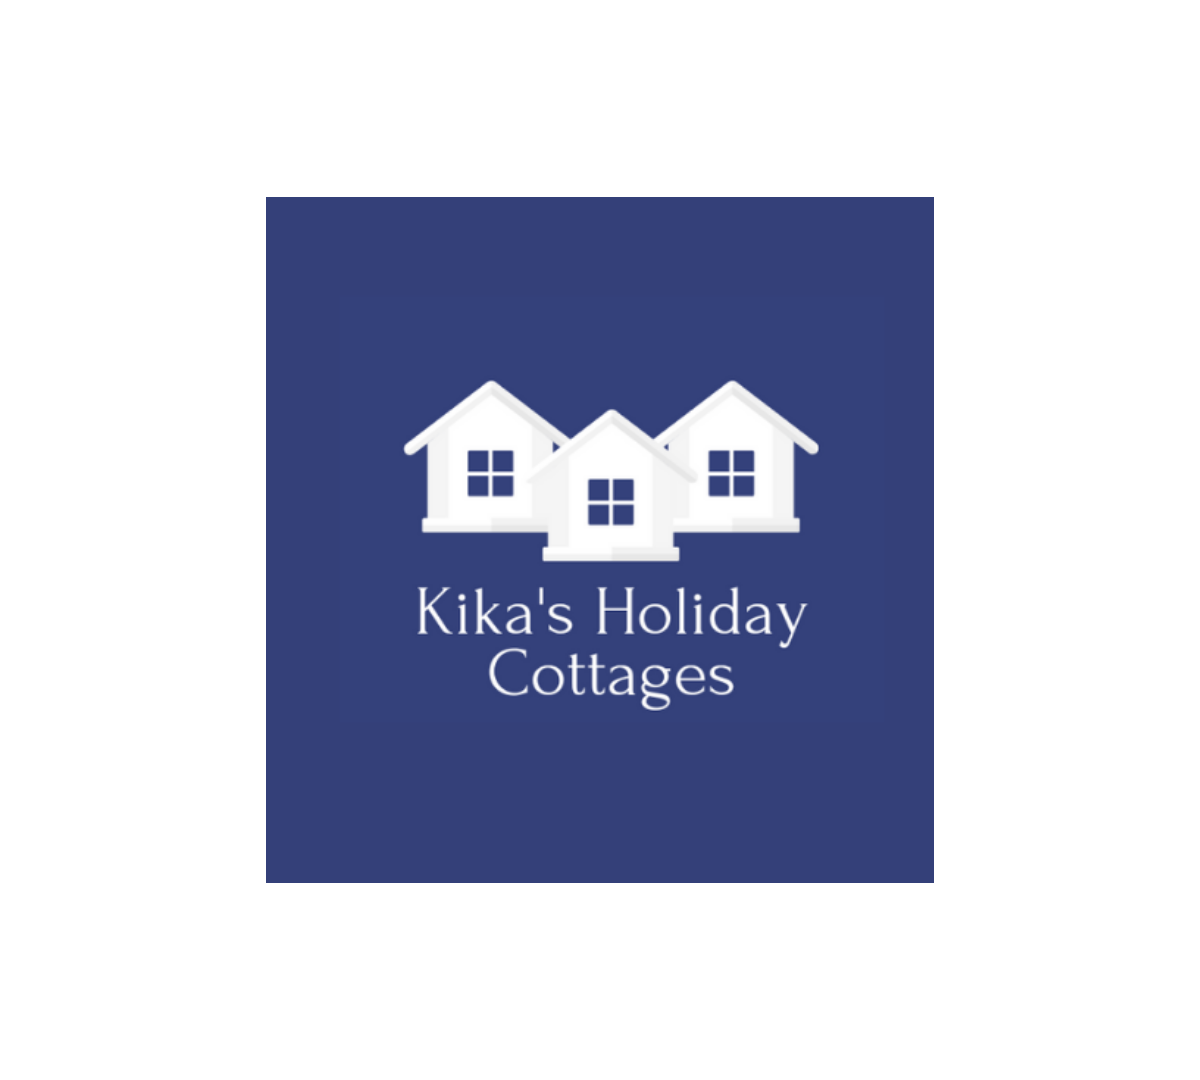 13% increase in revenue year over year for Kika's Holiday Cottages